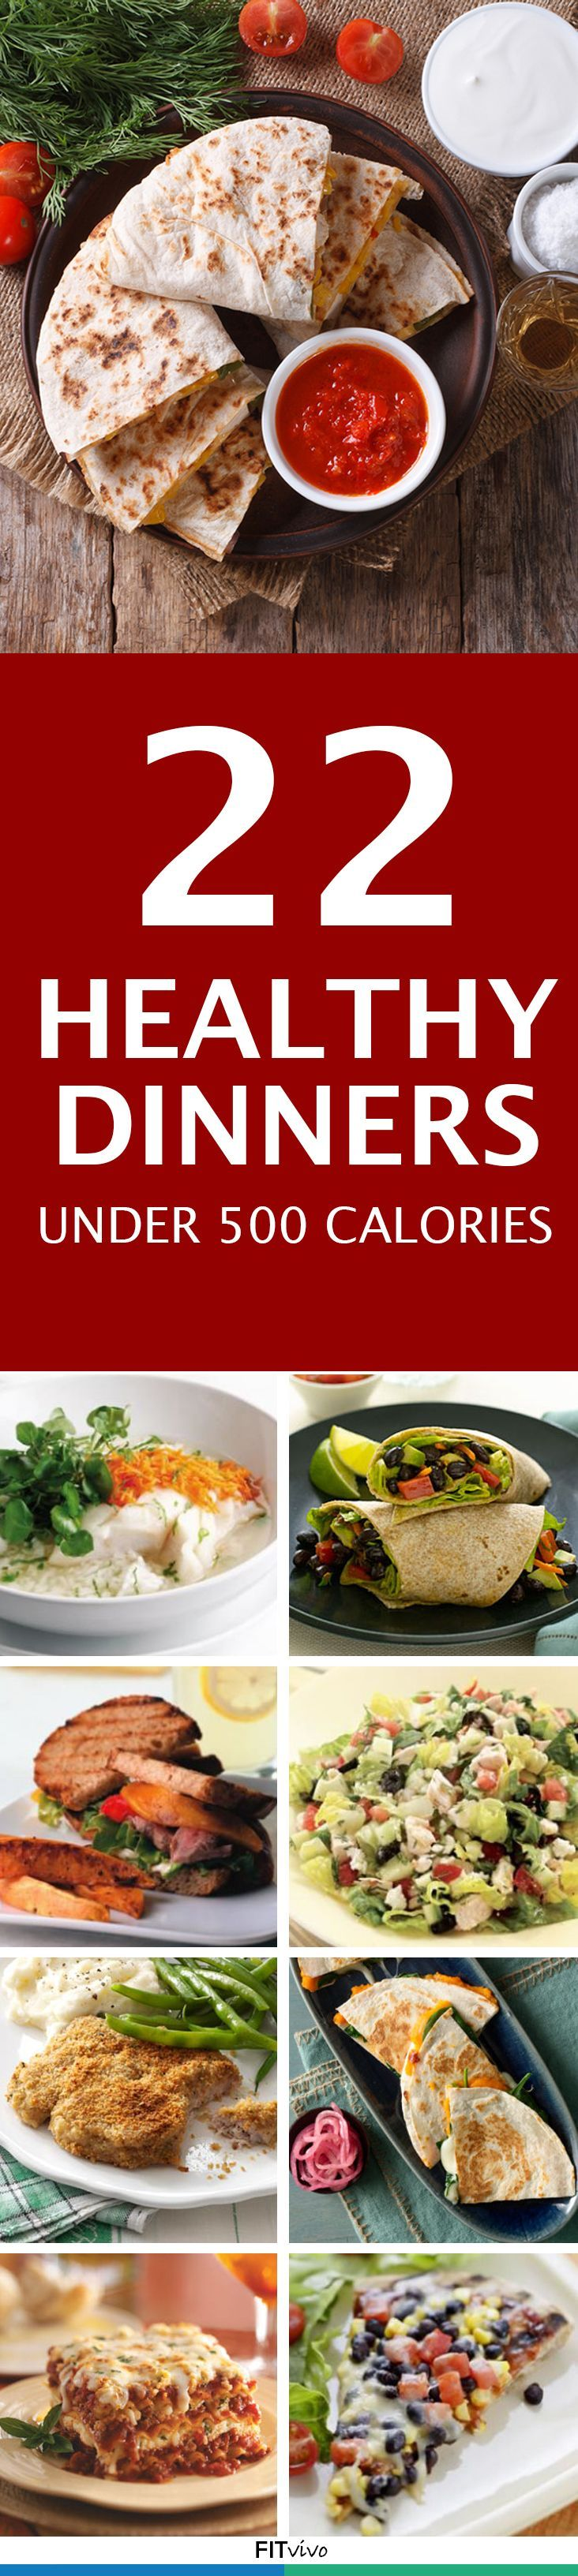 22 Dinner Recipes Under 500 Calories